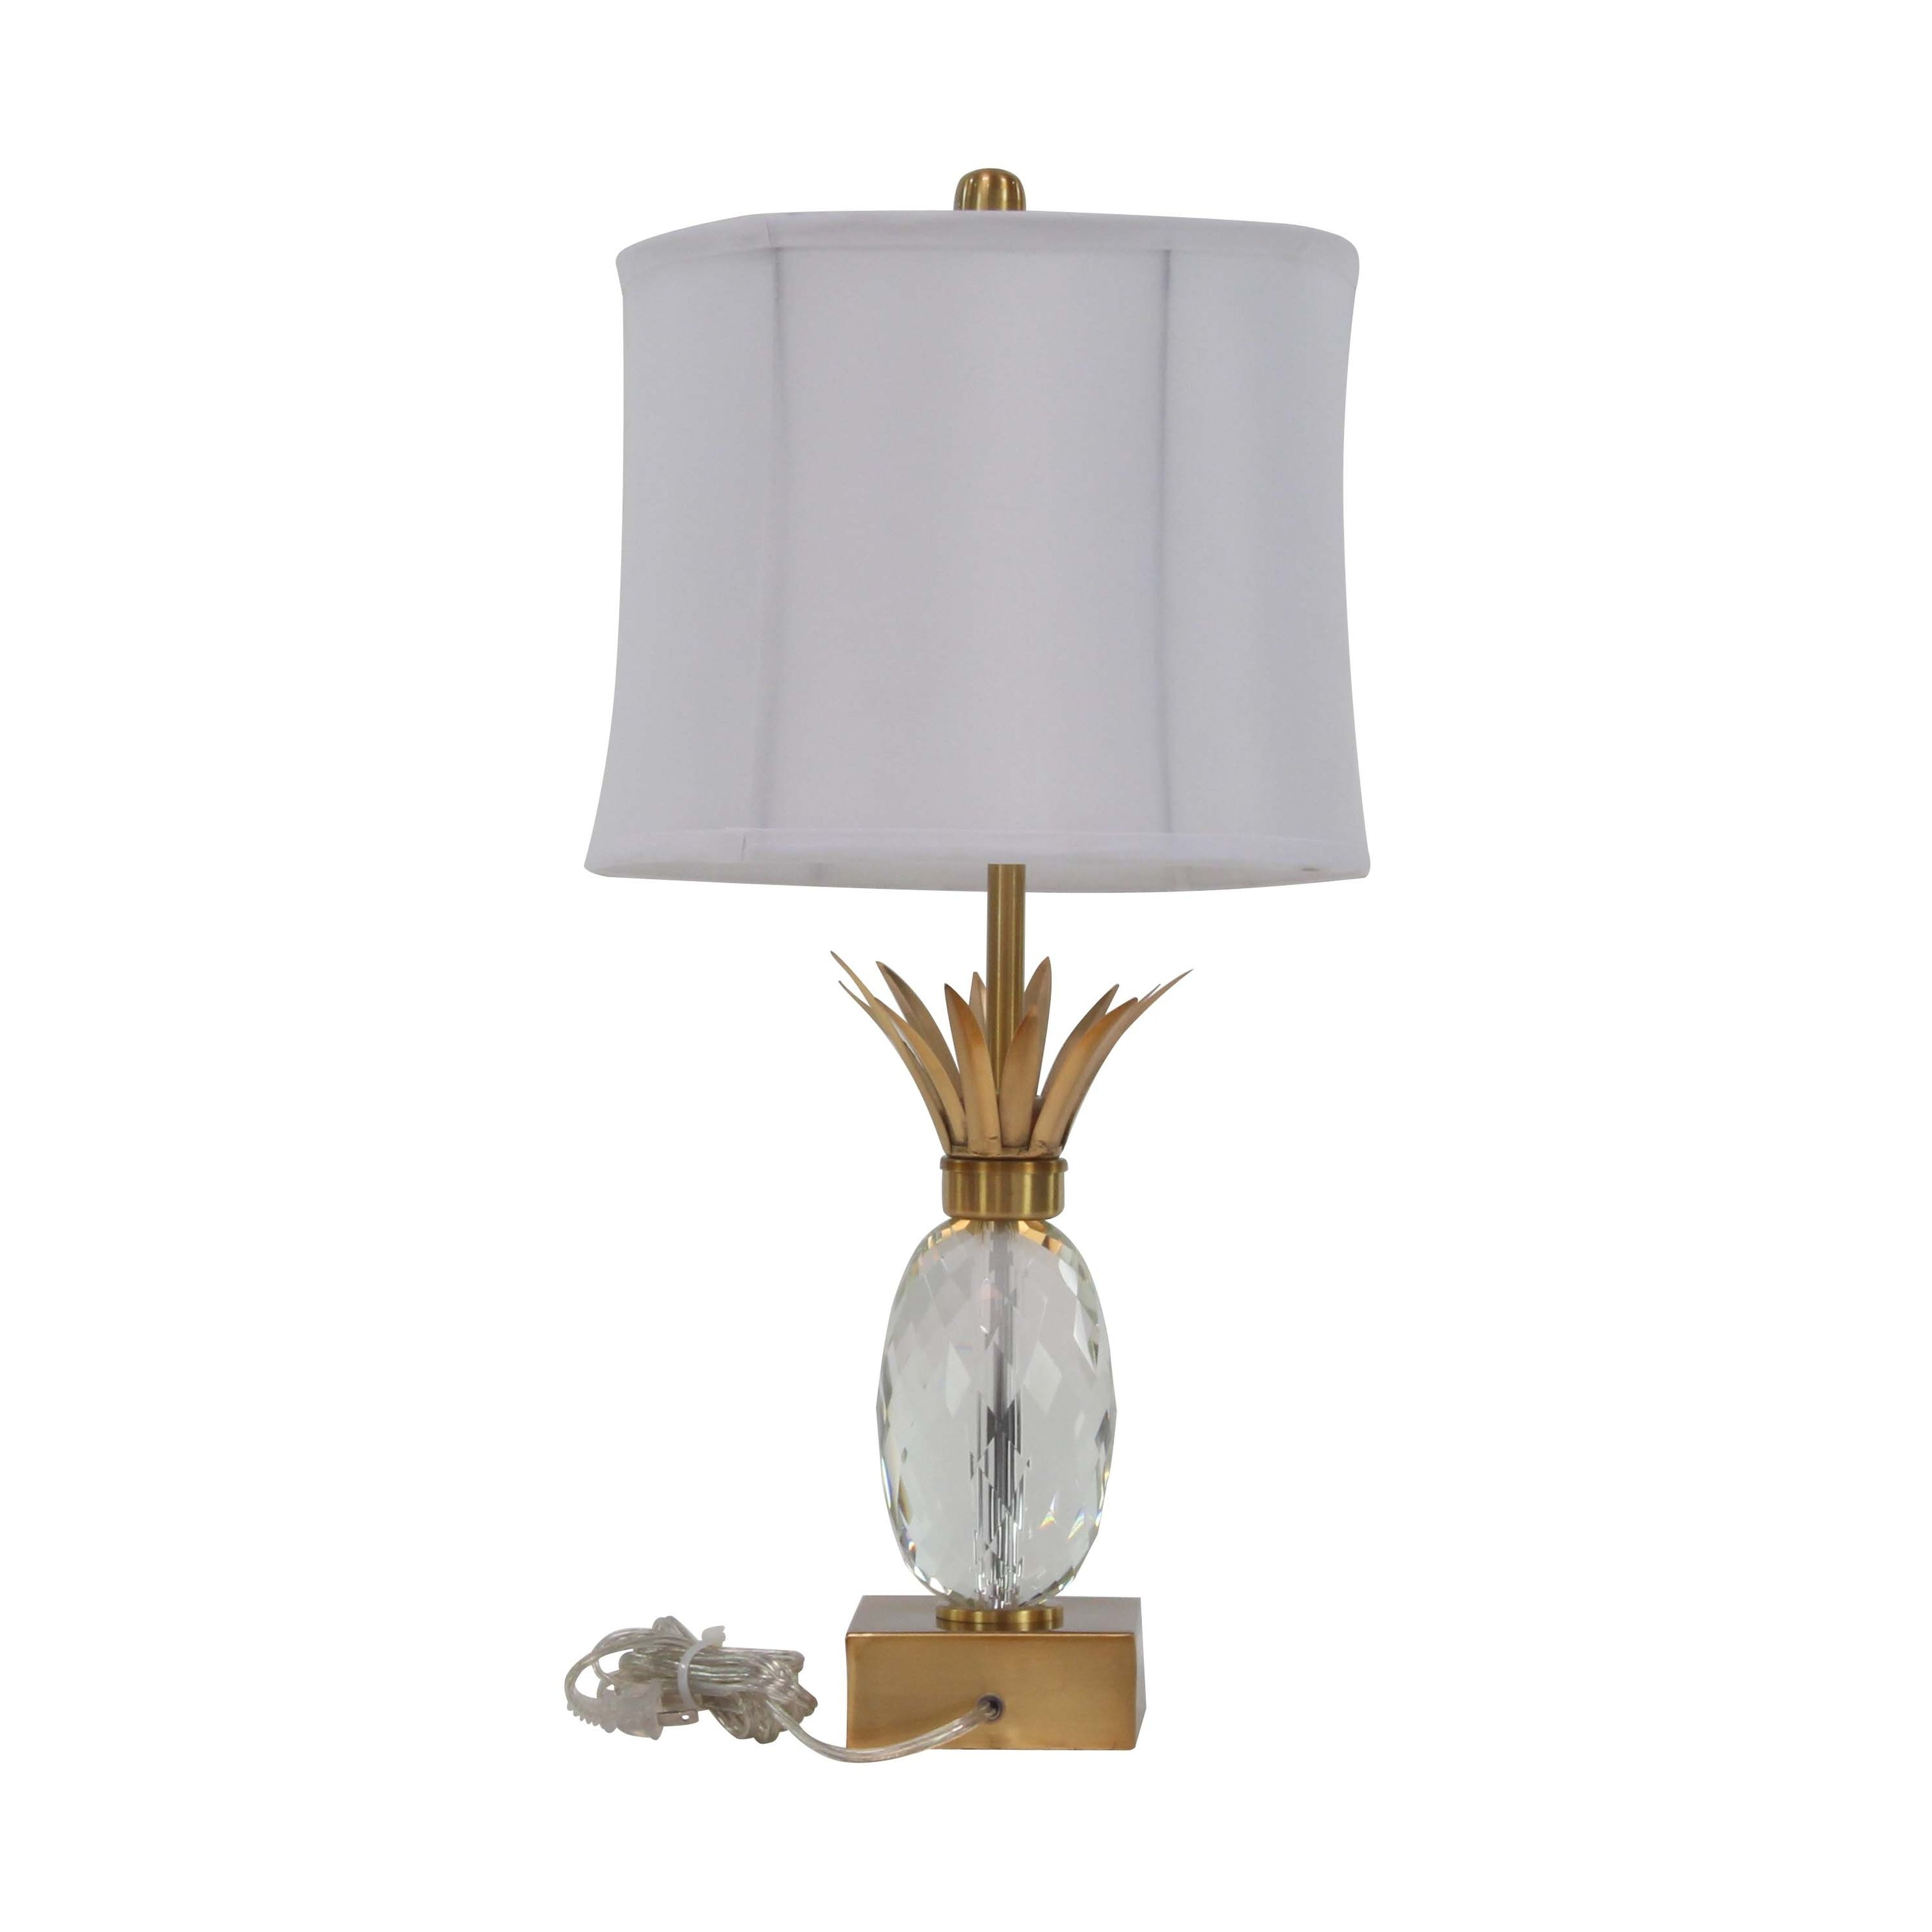 Shop Modern Iron And Crystal Pineapple Shape Table Lamp On Sale